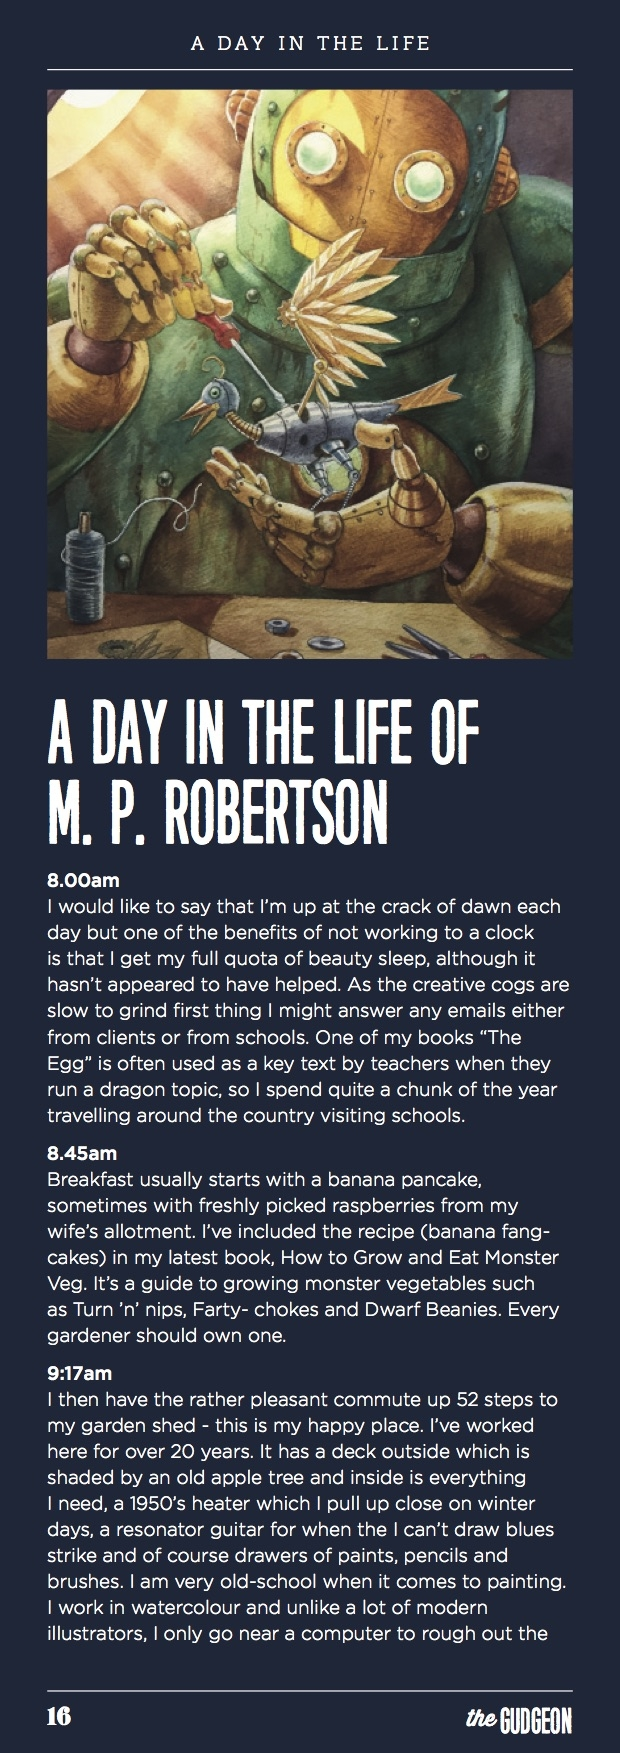 The Gudgeon M.P. Robertson